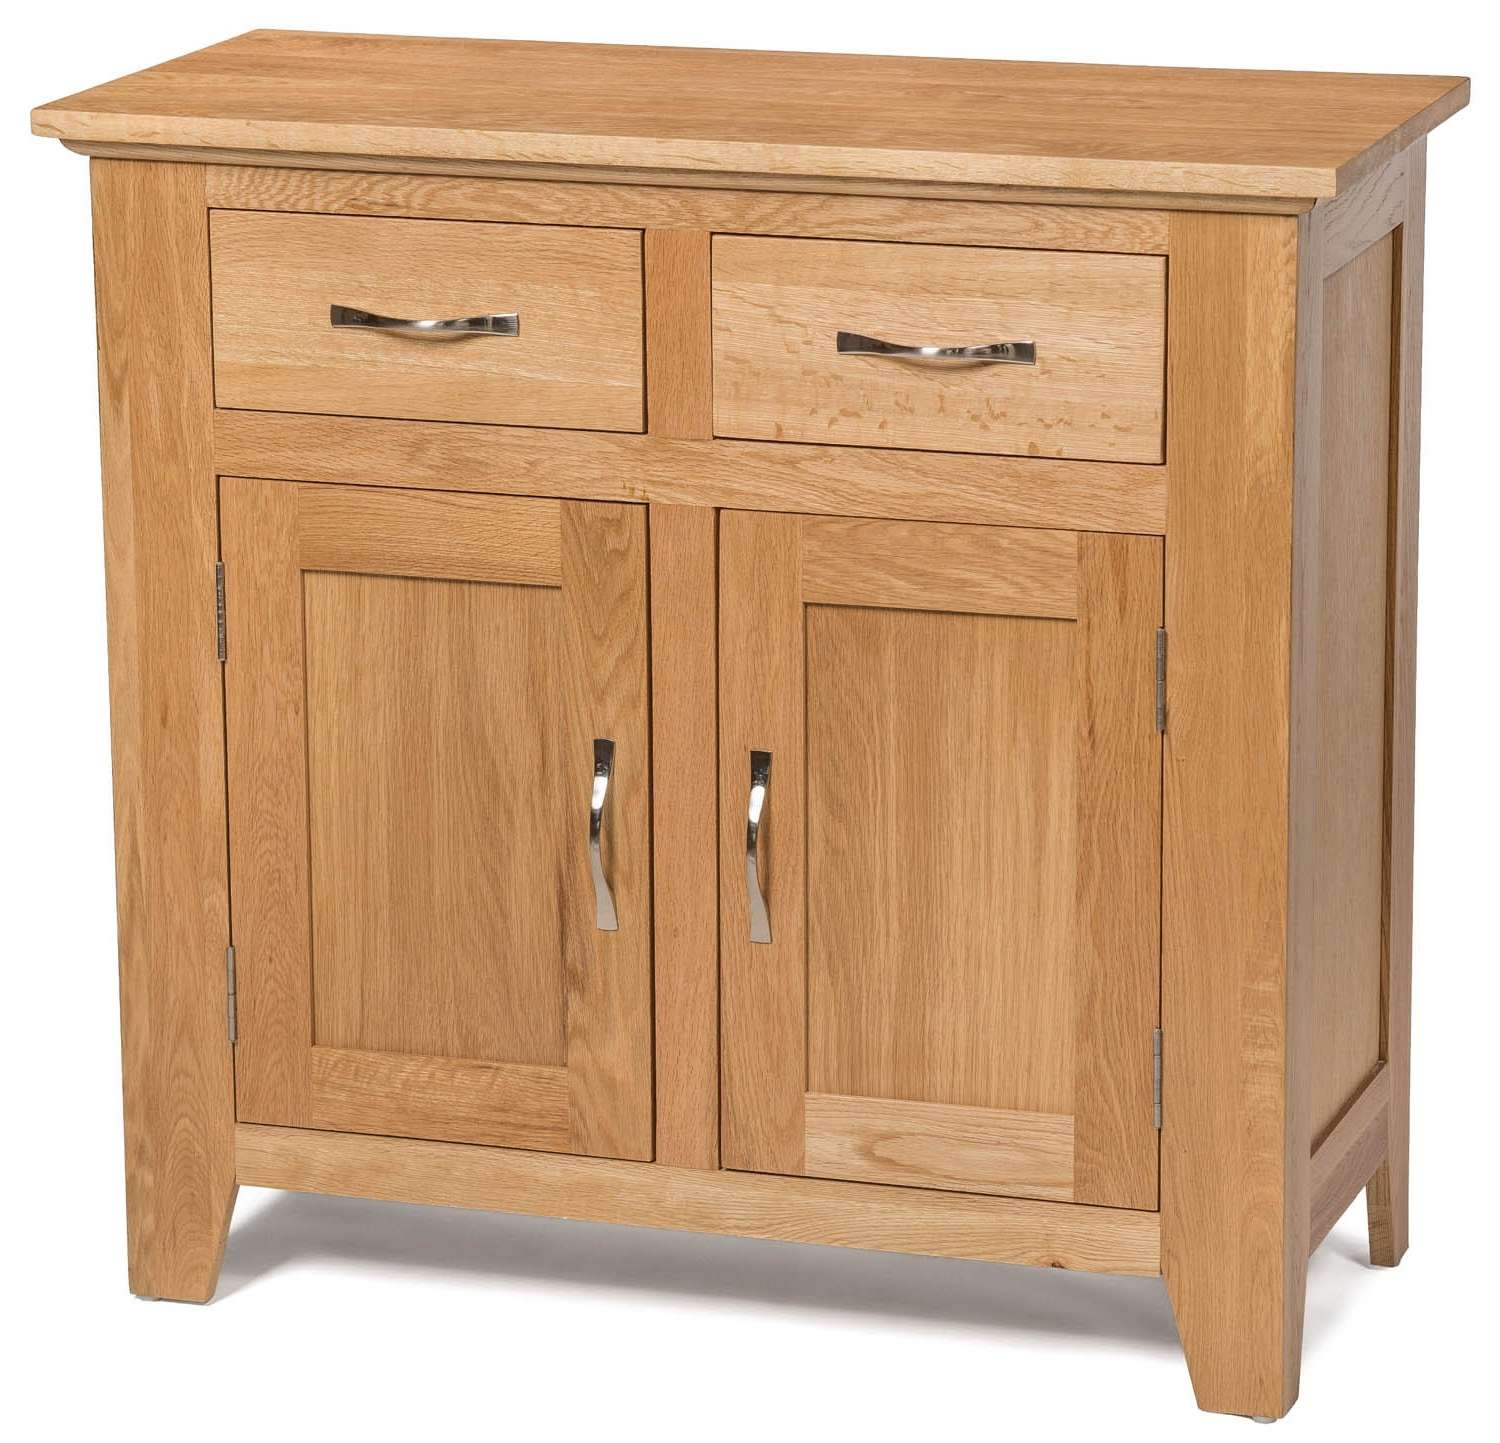 Camberley Oak Small 2 Door 2 Drawer Sideboard – Sideboards & Tops For Sideboards With Drawers (View 5 of 20)